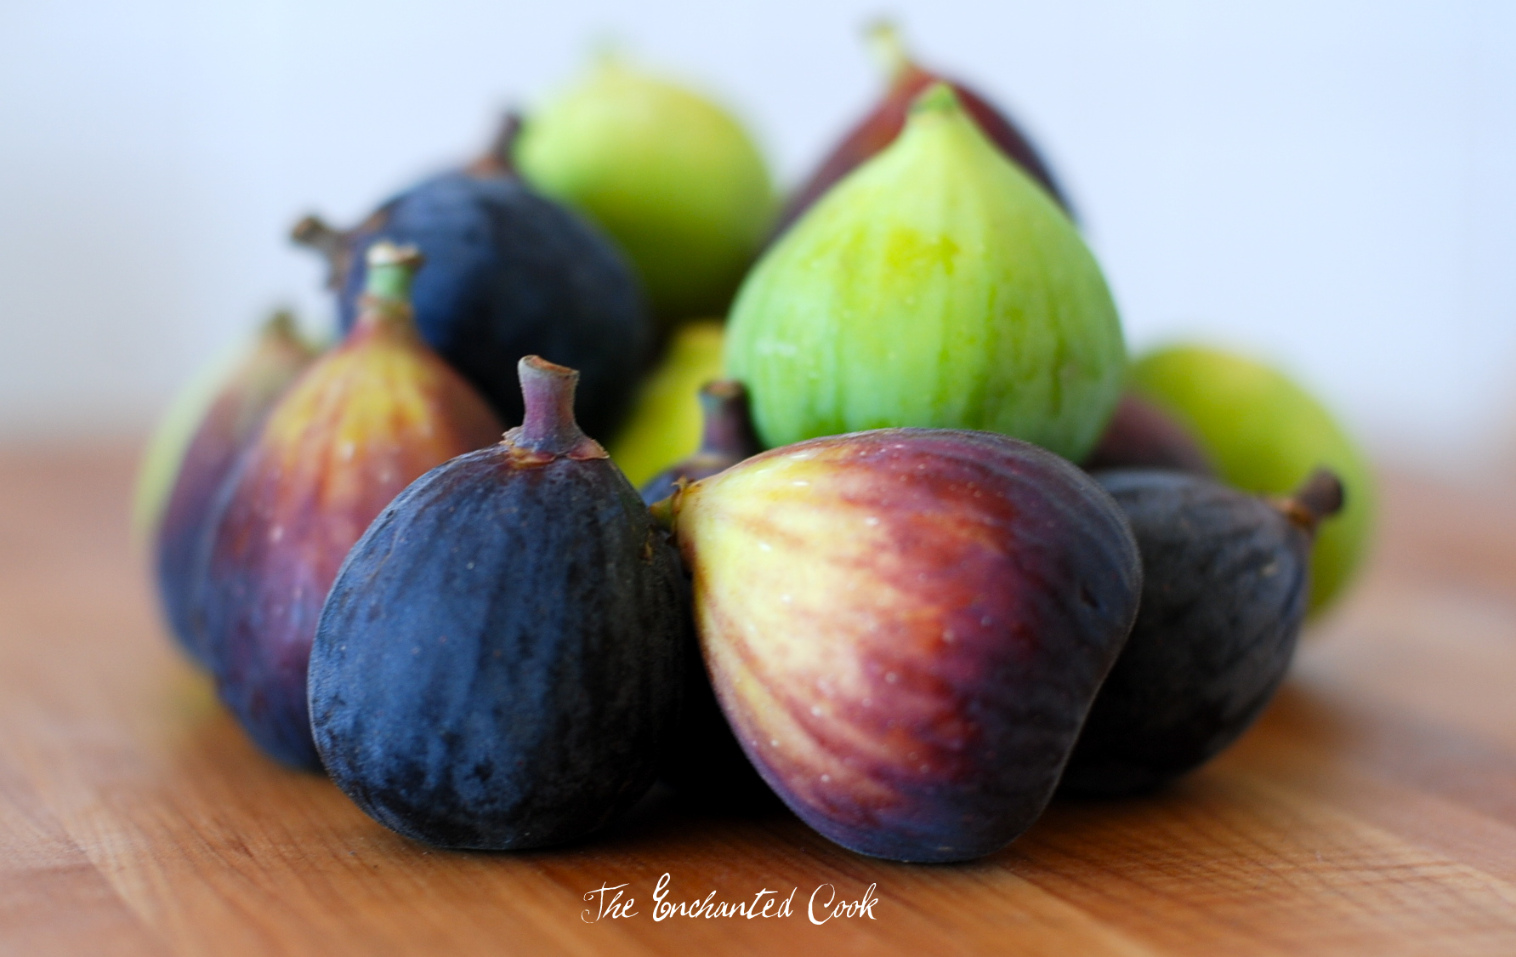 The Enchanted Cook: All About Figs plus a Fig and Goat Cheese